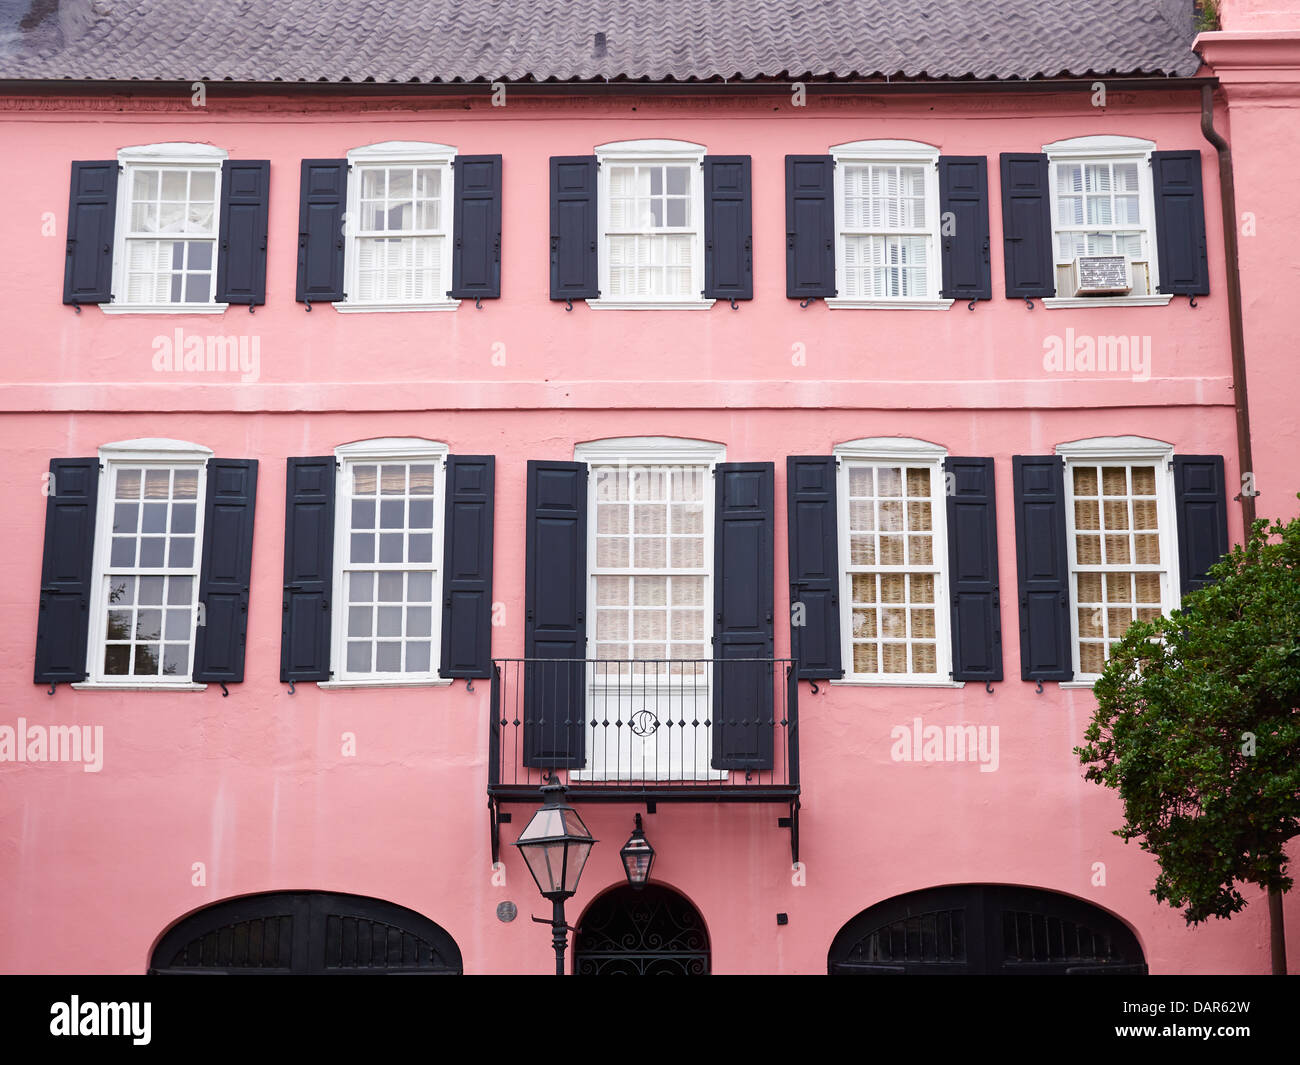 The Pink House Charleston Stock Photos & The Pink House Charleston ...